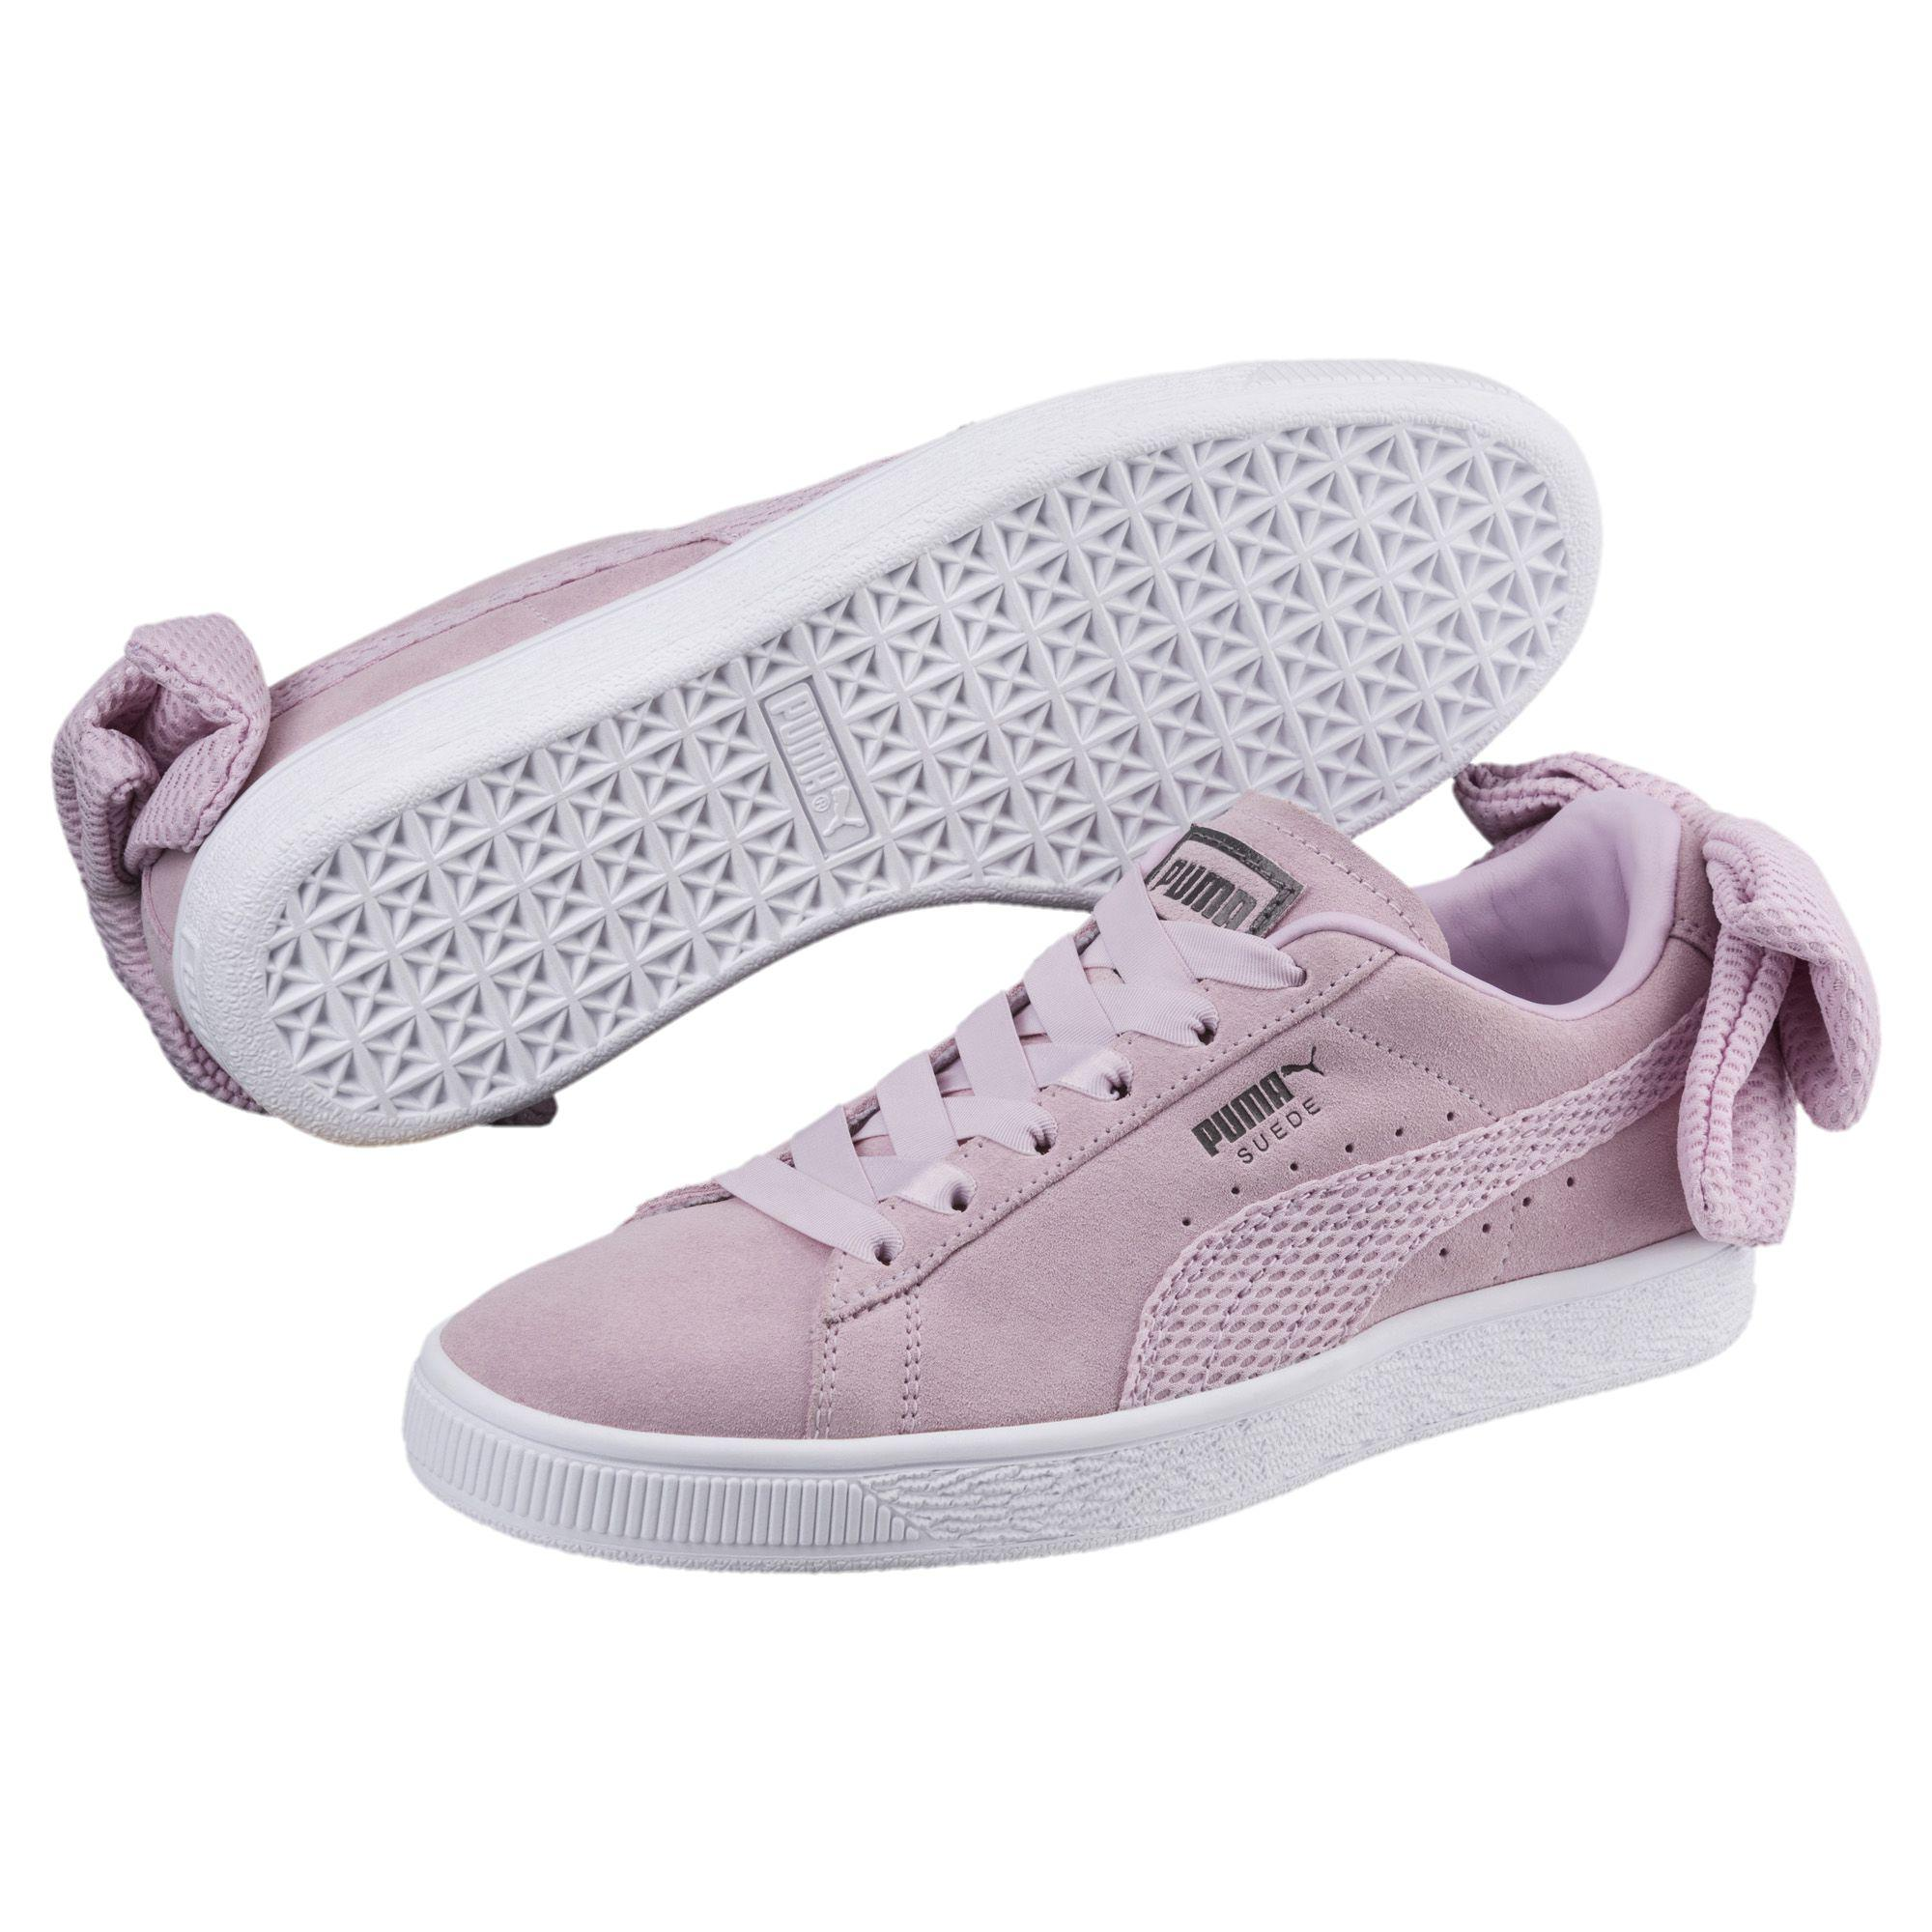 PUMA - Multicolor Suede Bow Uprising Women s Sneakers - Lyst. View  fullscreen a35689384